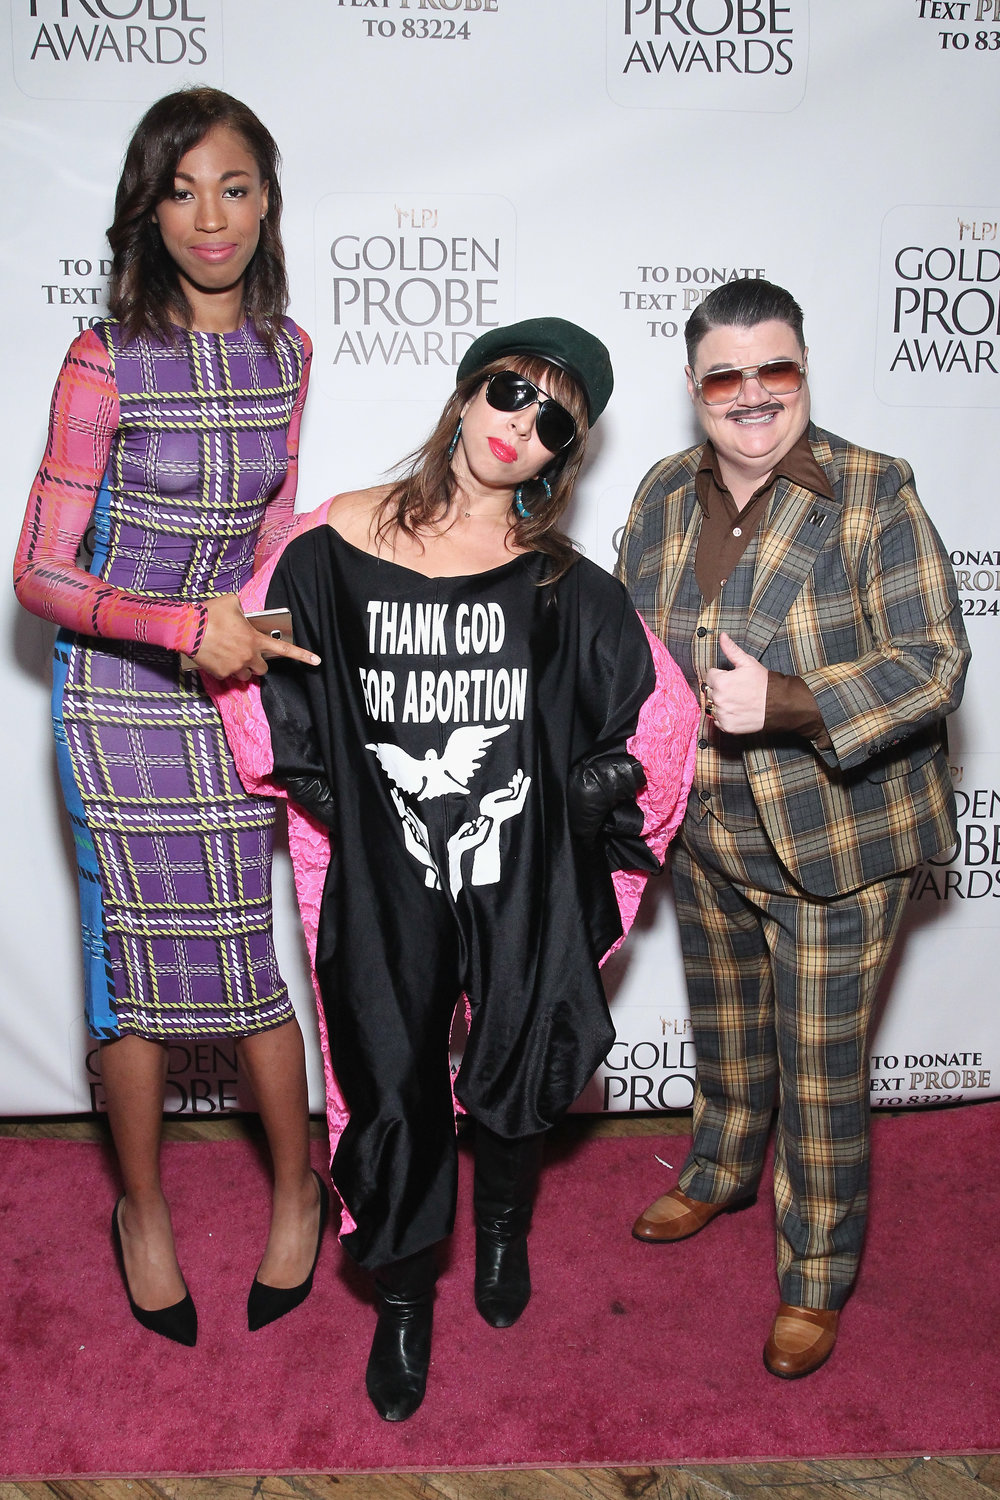 Kita Updike, Beva Ruiz, and Murray Hill (Photo by Astrid Stawiarz/Getty Images for Lady Parts Justice)